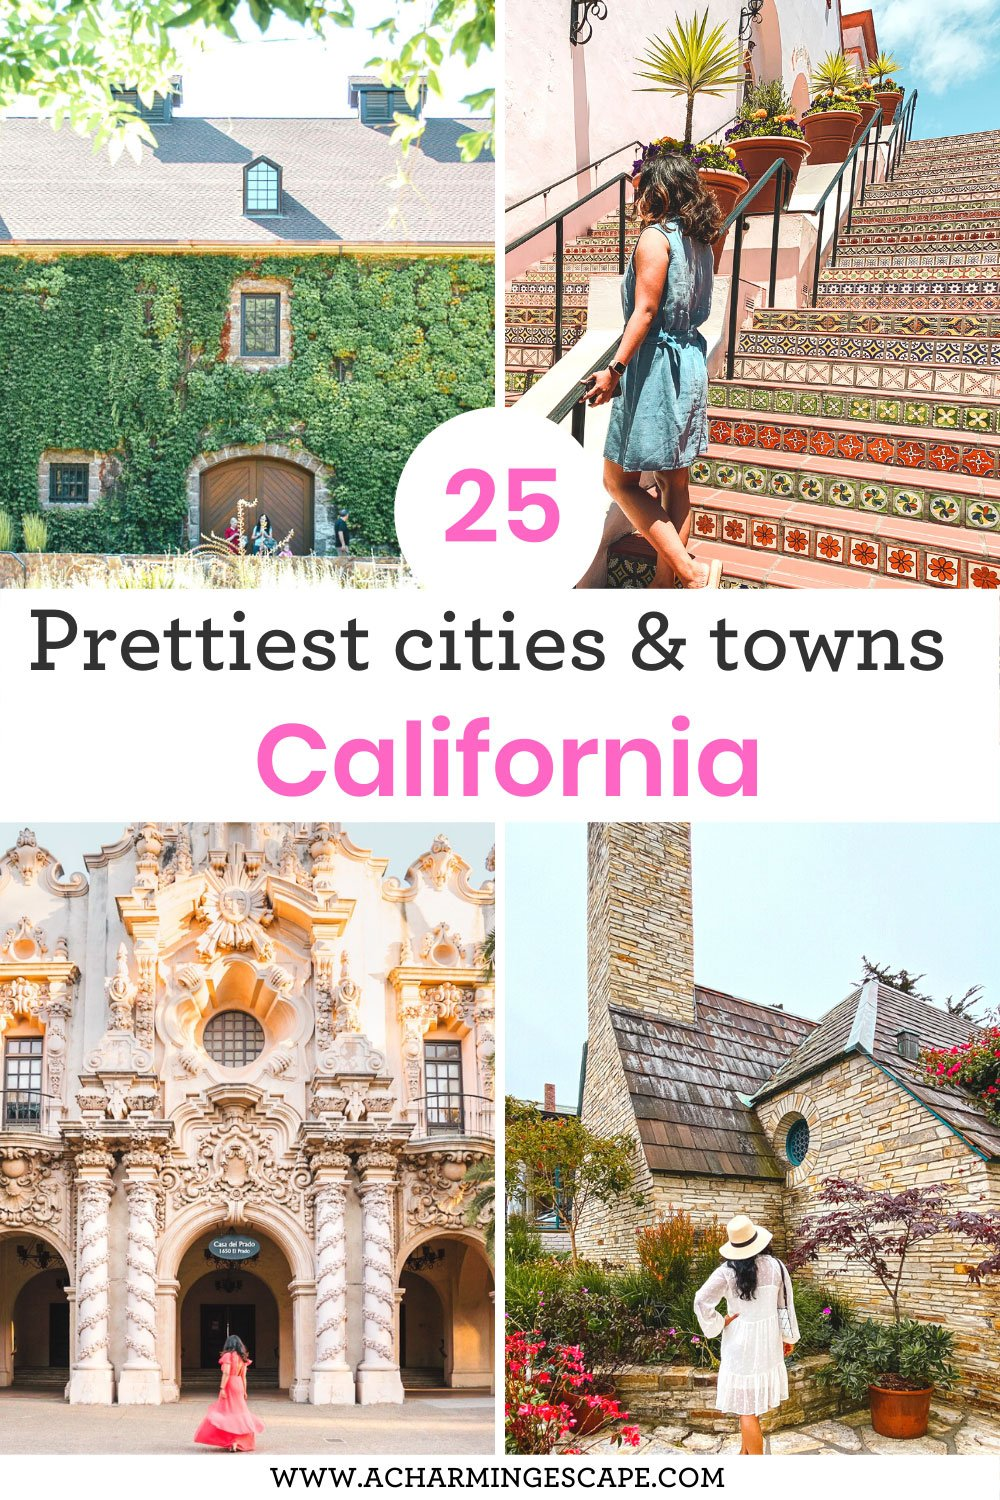 Prettiest cities and towns in California